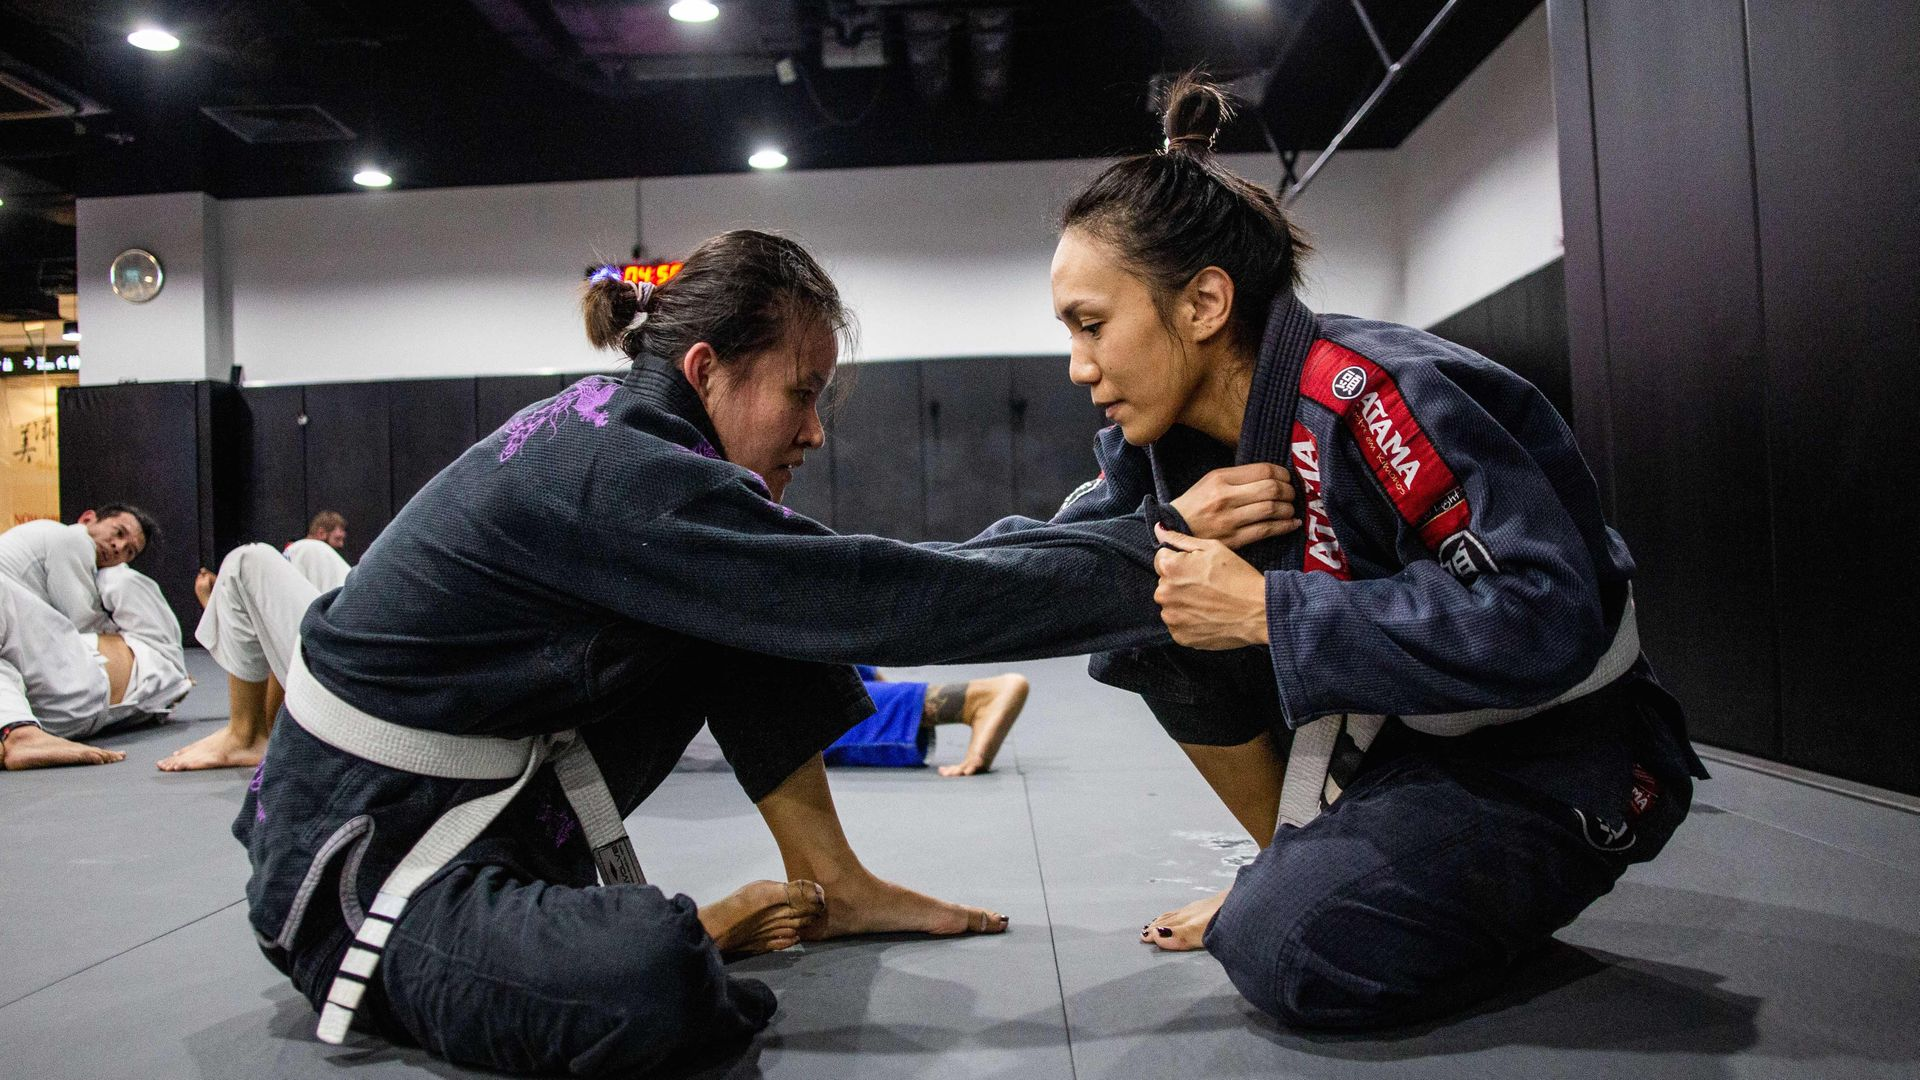 Two people sparring in BJJ class.